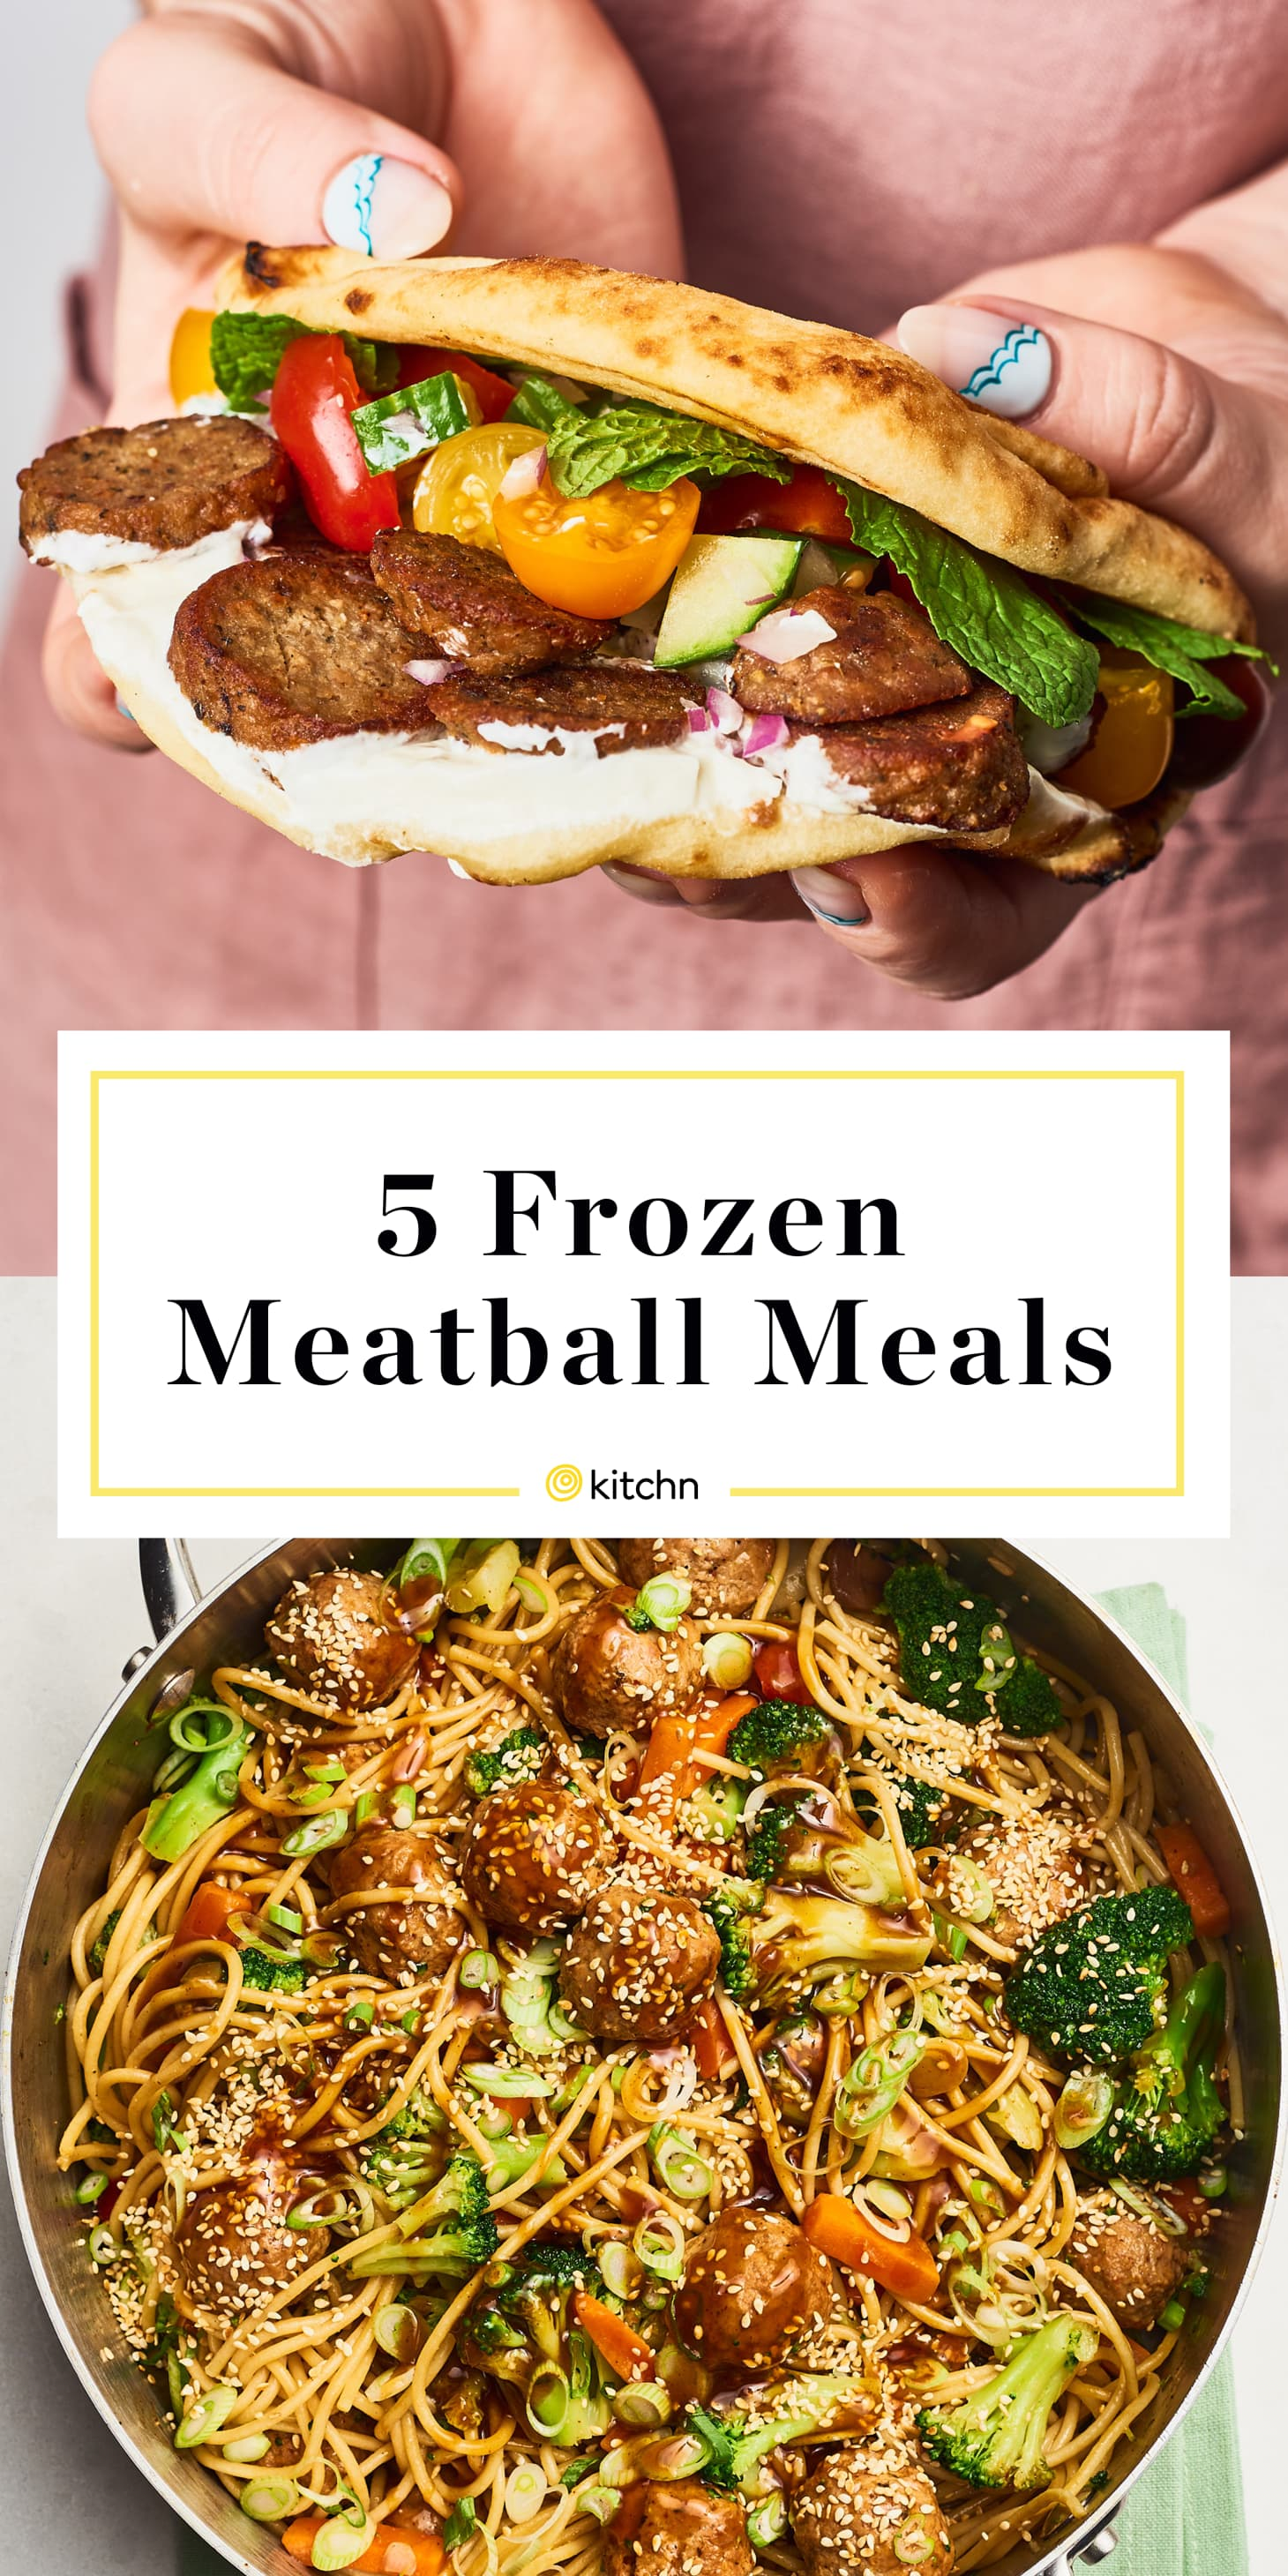 Easy Dinner Ideas to Make from Frozen Meatballs | Kitchn